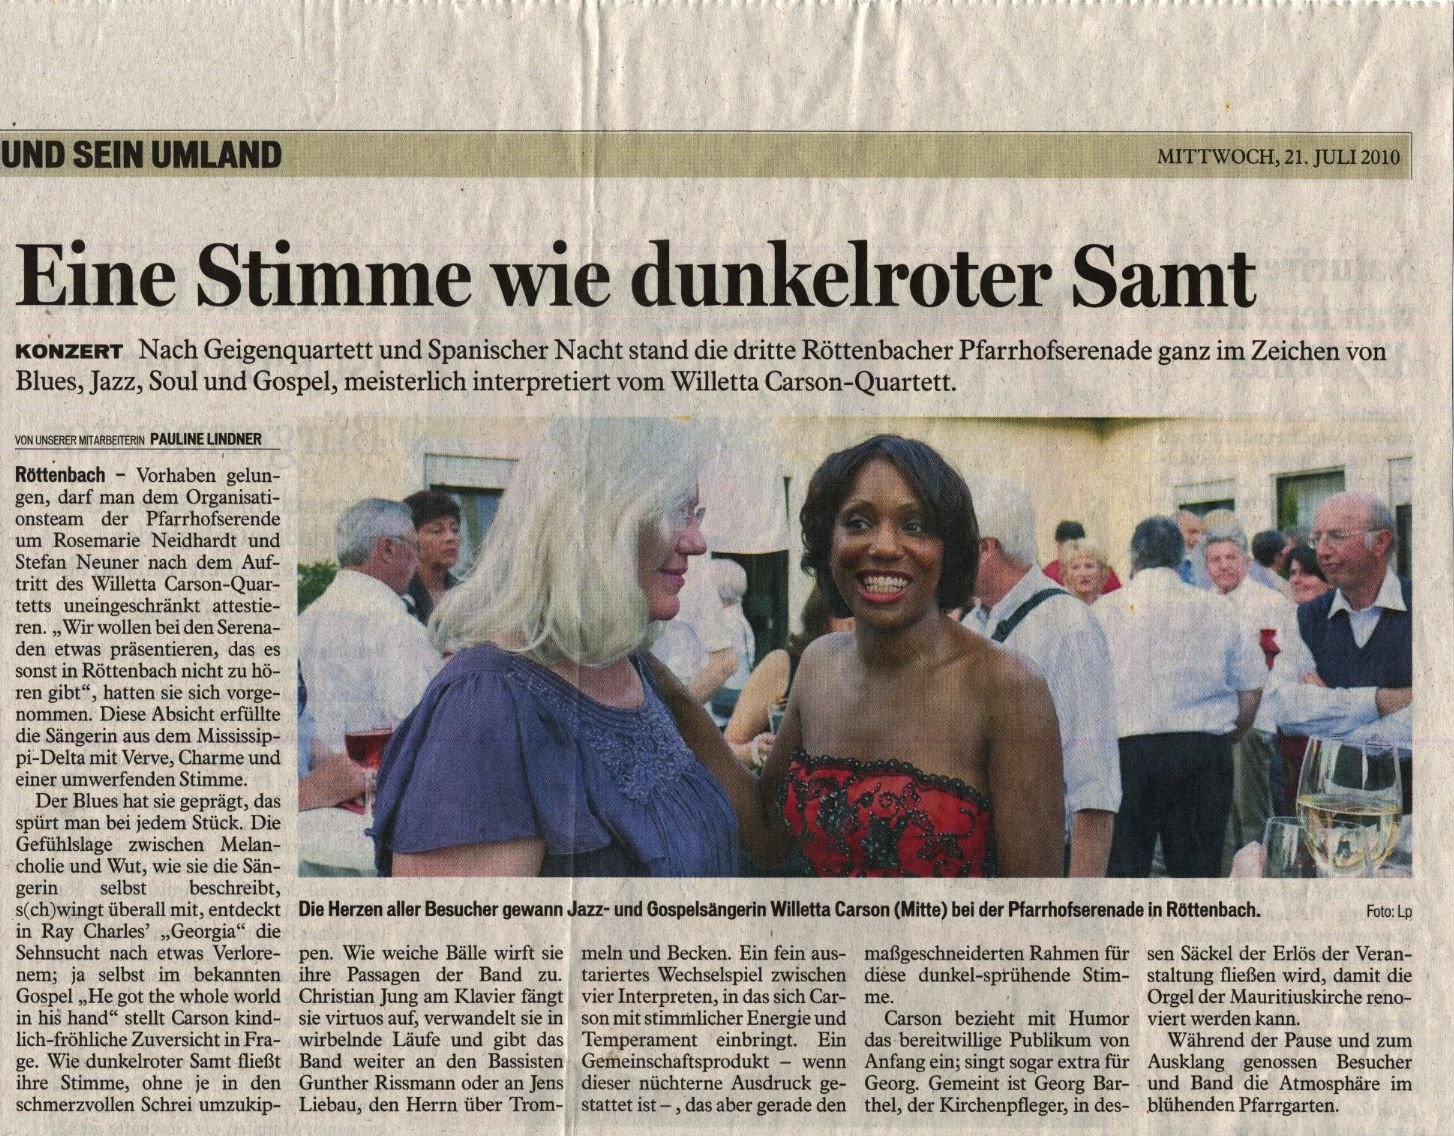 Some newspaper reviews the jazz, blues, soul and gospel serenade in the katholic St. Mauritius church in Röttenbach, which hosted the Willetta Carson Quartet for a joyful evening concert